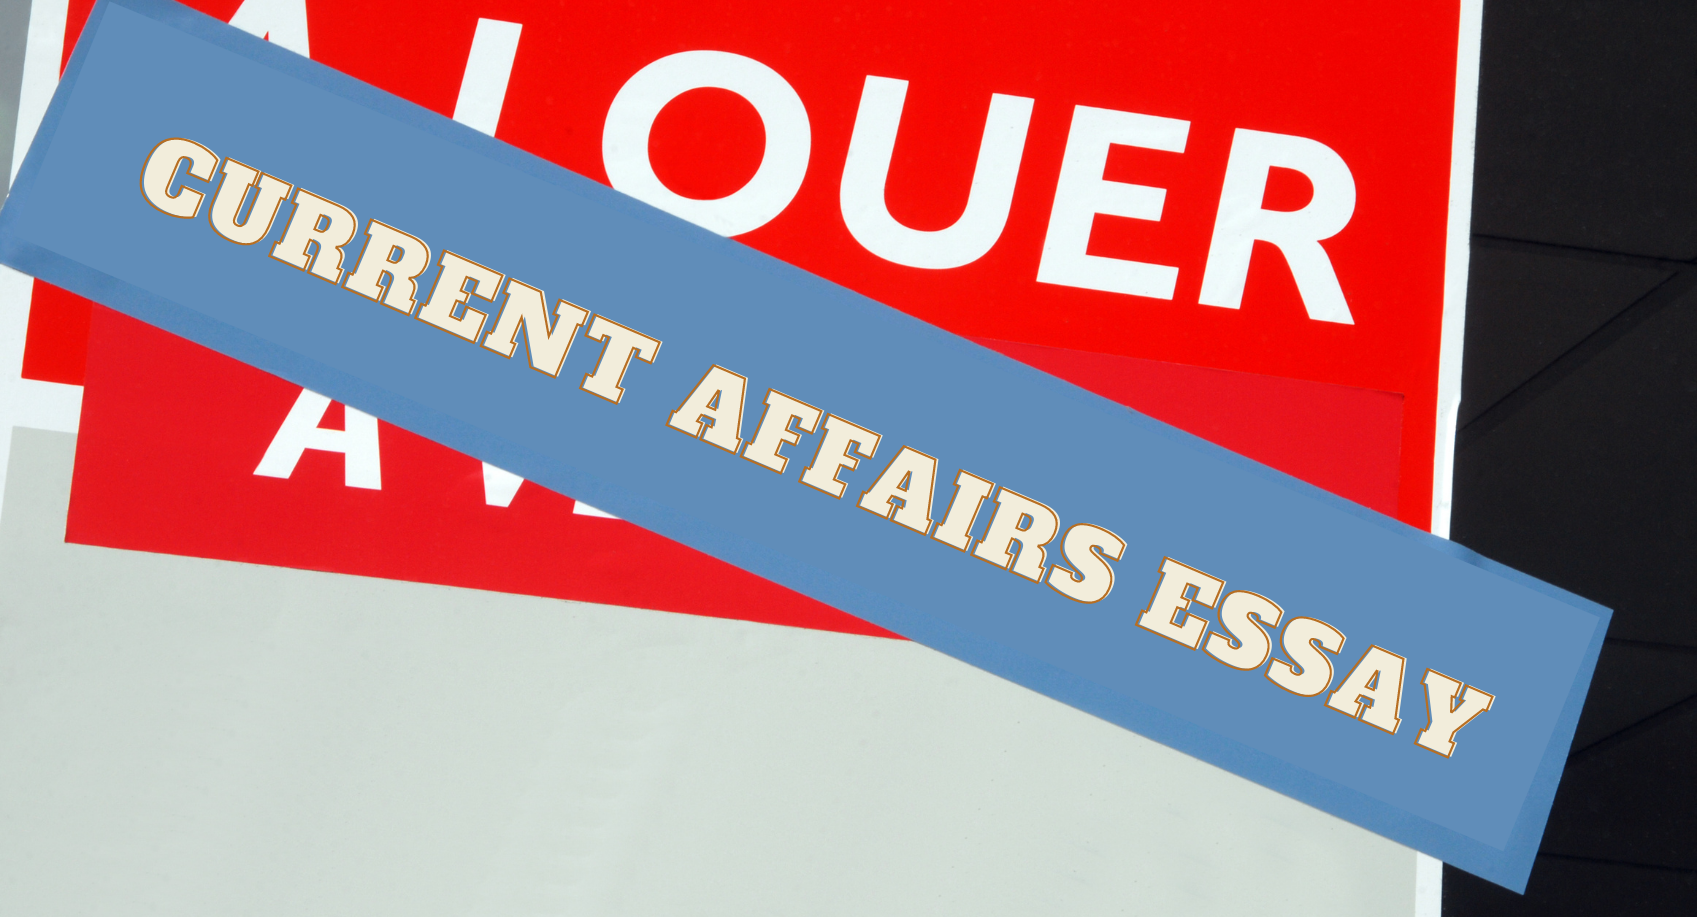 Which topics can be included in the current affairs essay?